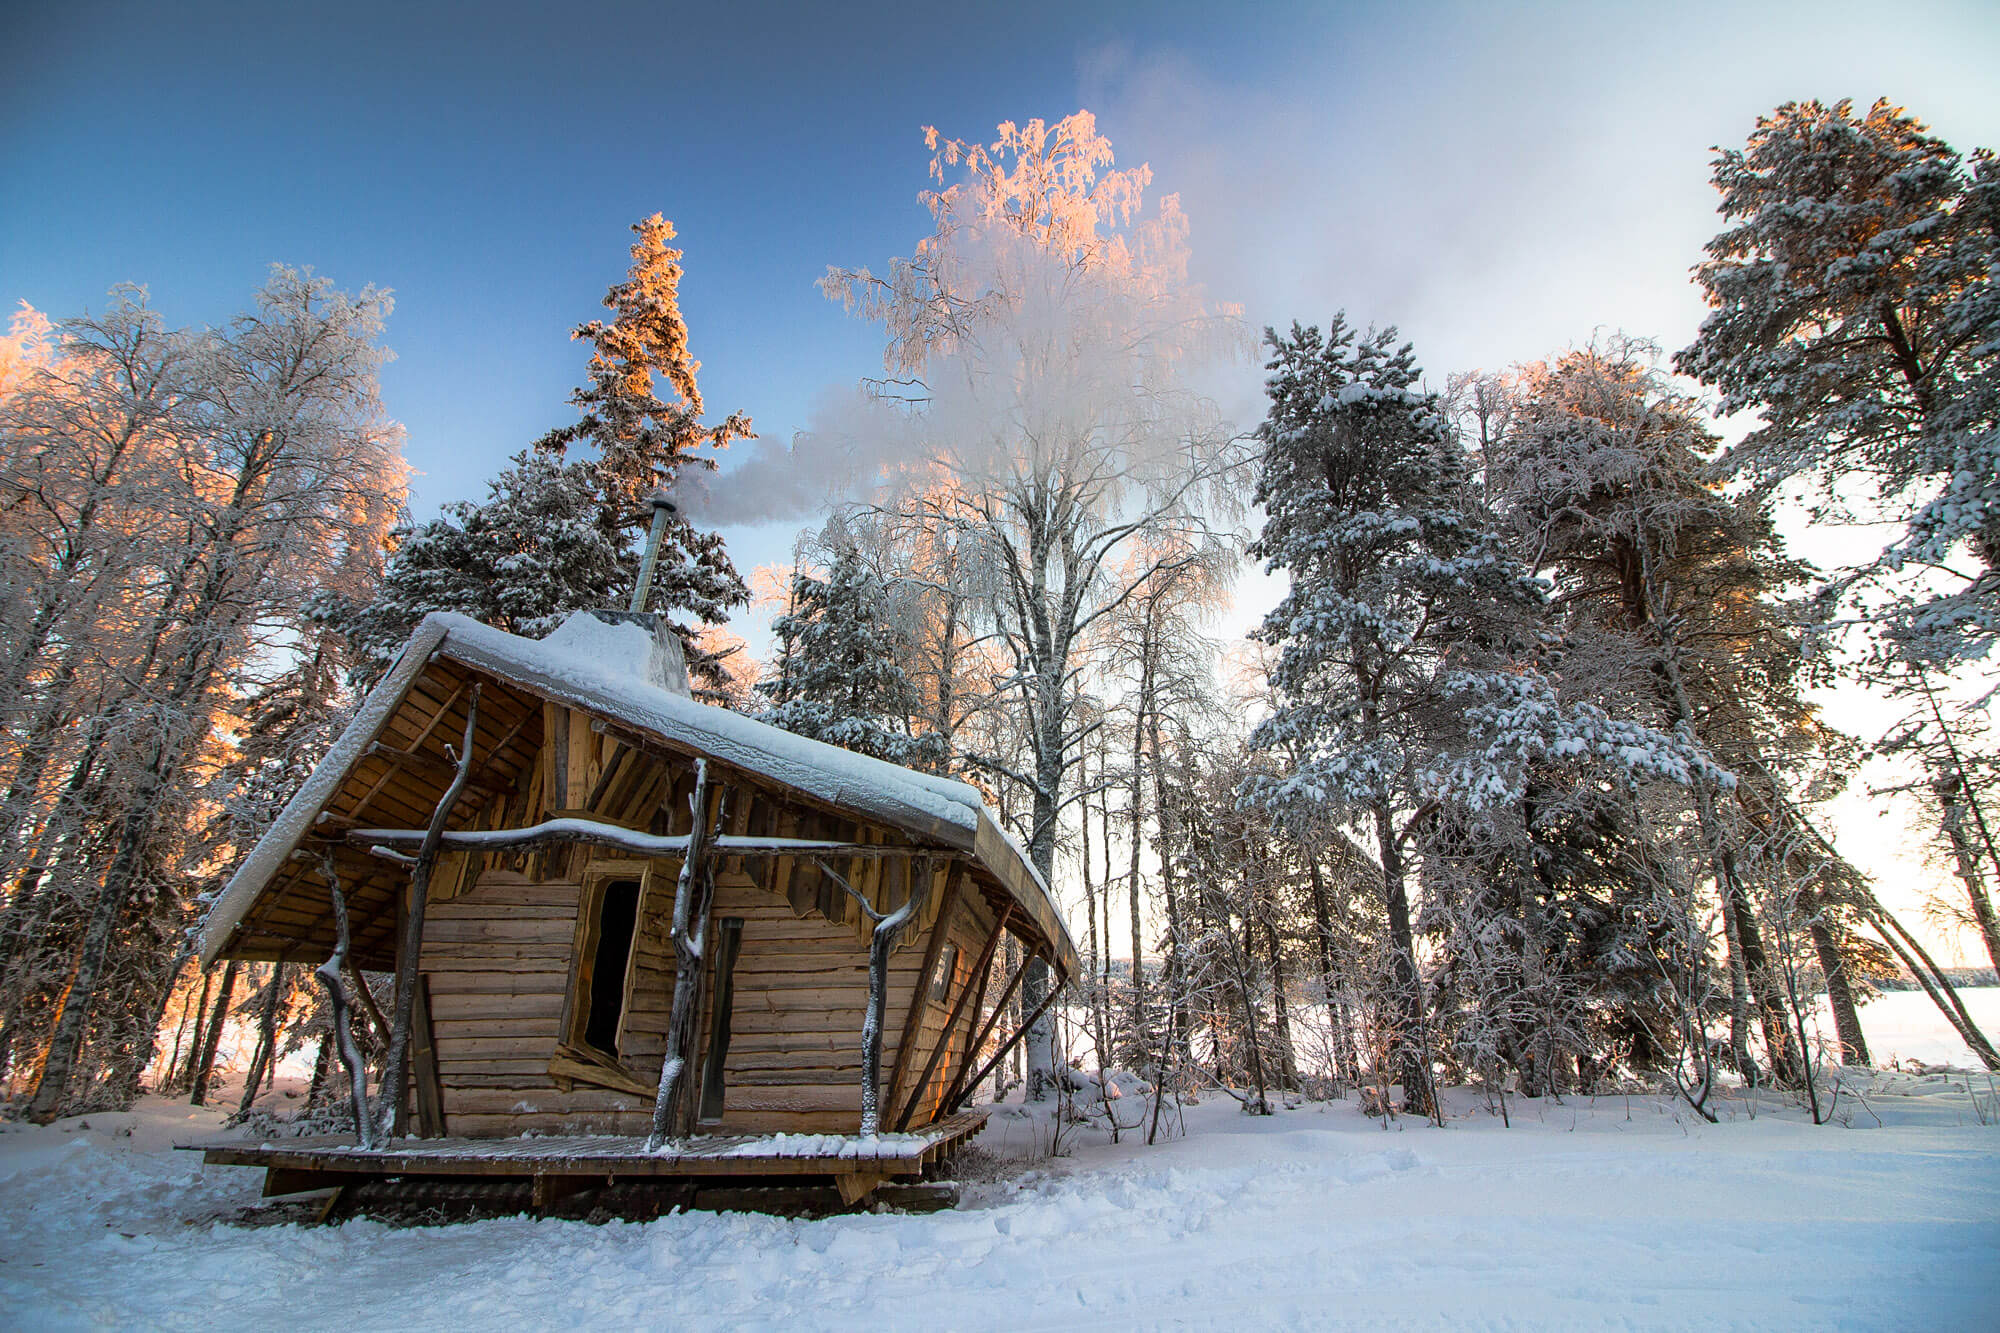 Cabin of a camp in Swedish Lapland